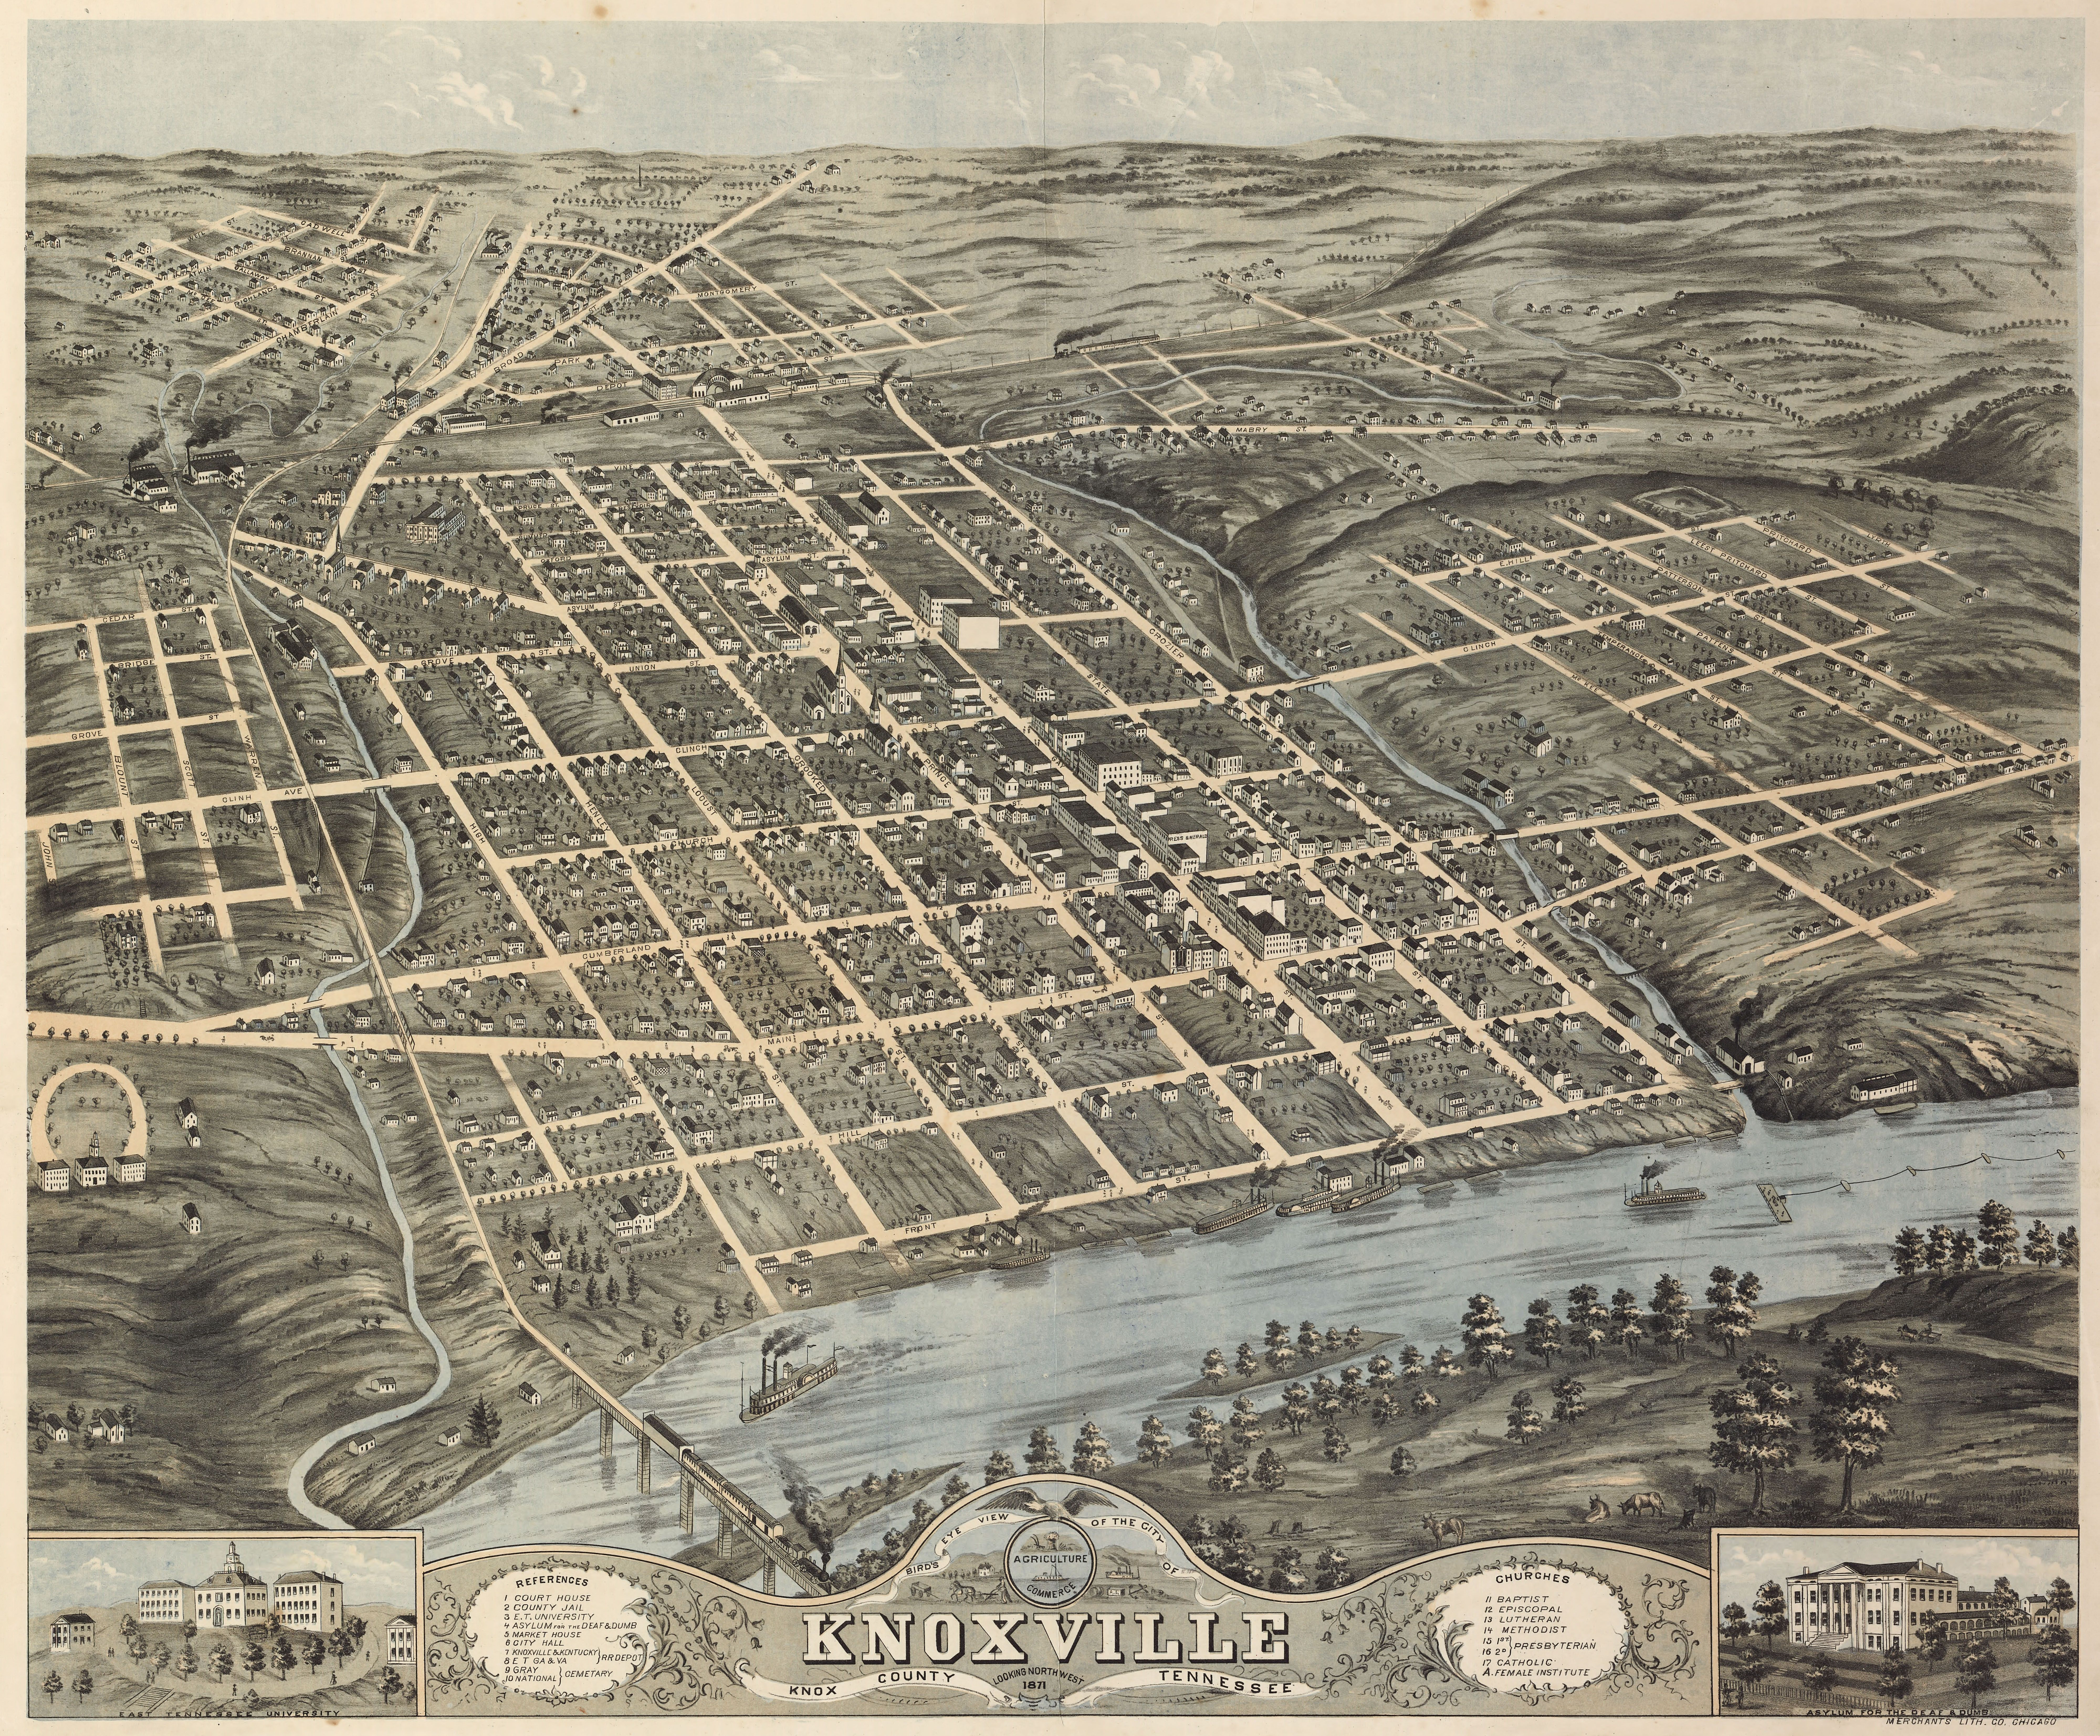 old map of knoxville tennessee - Google Search | Birds eye ... Map Of Seymour Tn on map of jellico tn, map of elkmont tn, map of south knoxville tn, map of reliance tn, map of lake tansi tn, map of washburn tn, map of collegedale tn, map of grainger county tn, map of red boiling springs tn, map of tallassee tn, map of sugar tree tn, map of trimble tn, map of toone tn, map of cobbly nob tn, map of bloomington tn, map of hartford tn, map of lafayette tn, map of unionville tn, map of blountville tn, map of ridgetop tn,